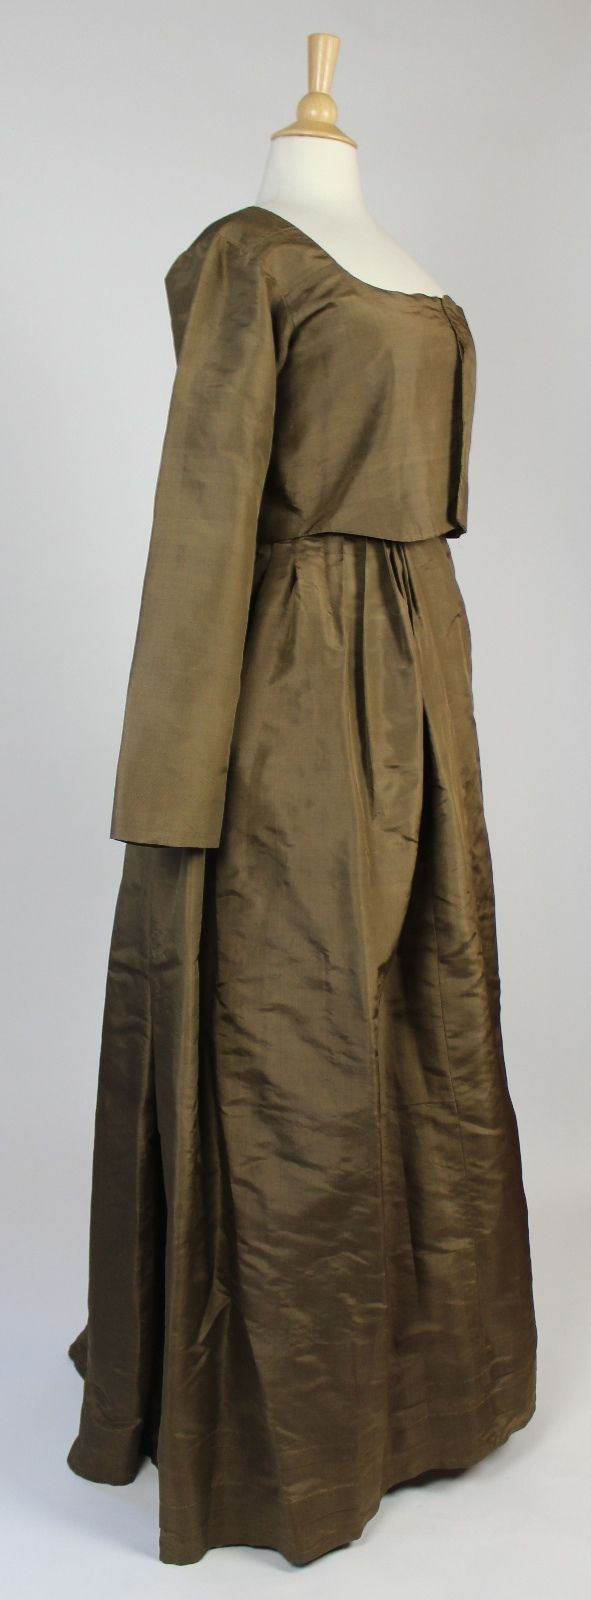 Eighteenth century golden green simple silk gown drawstring